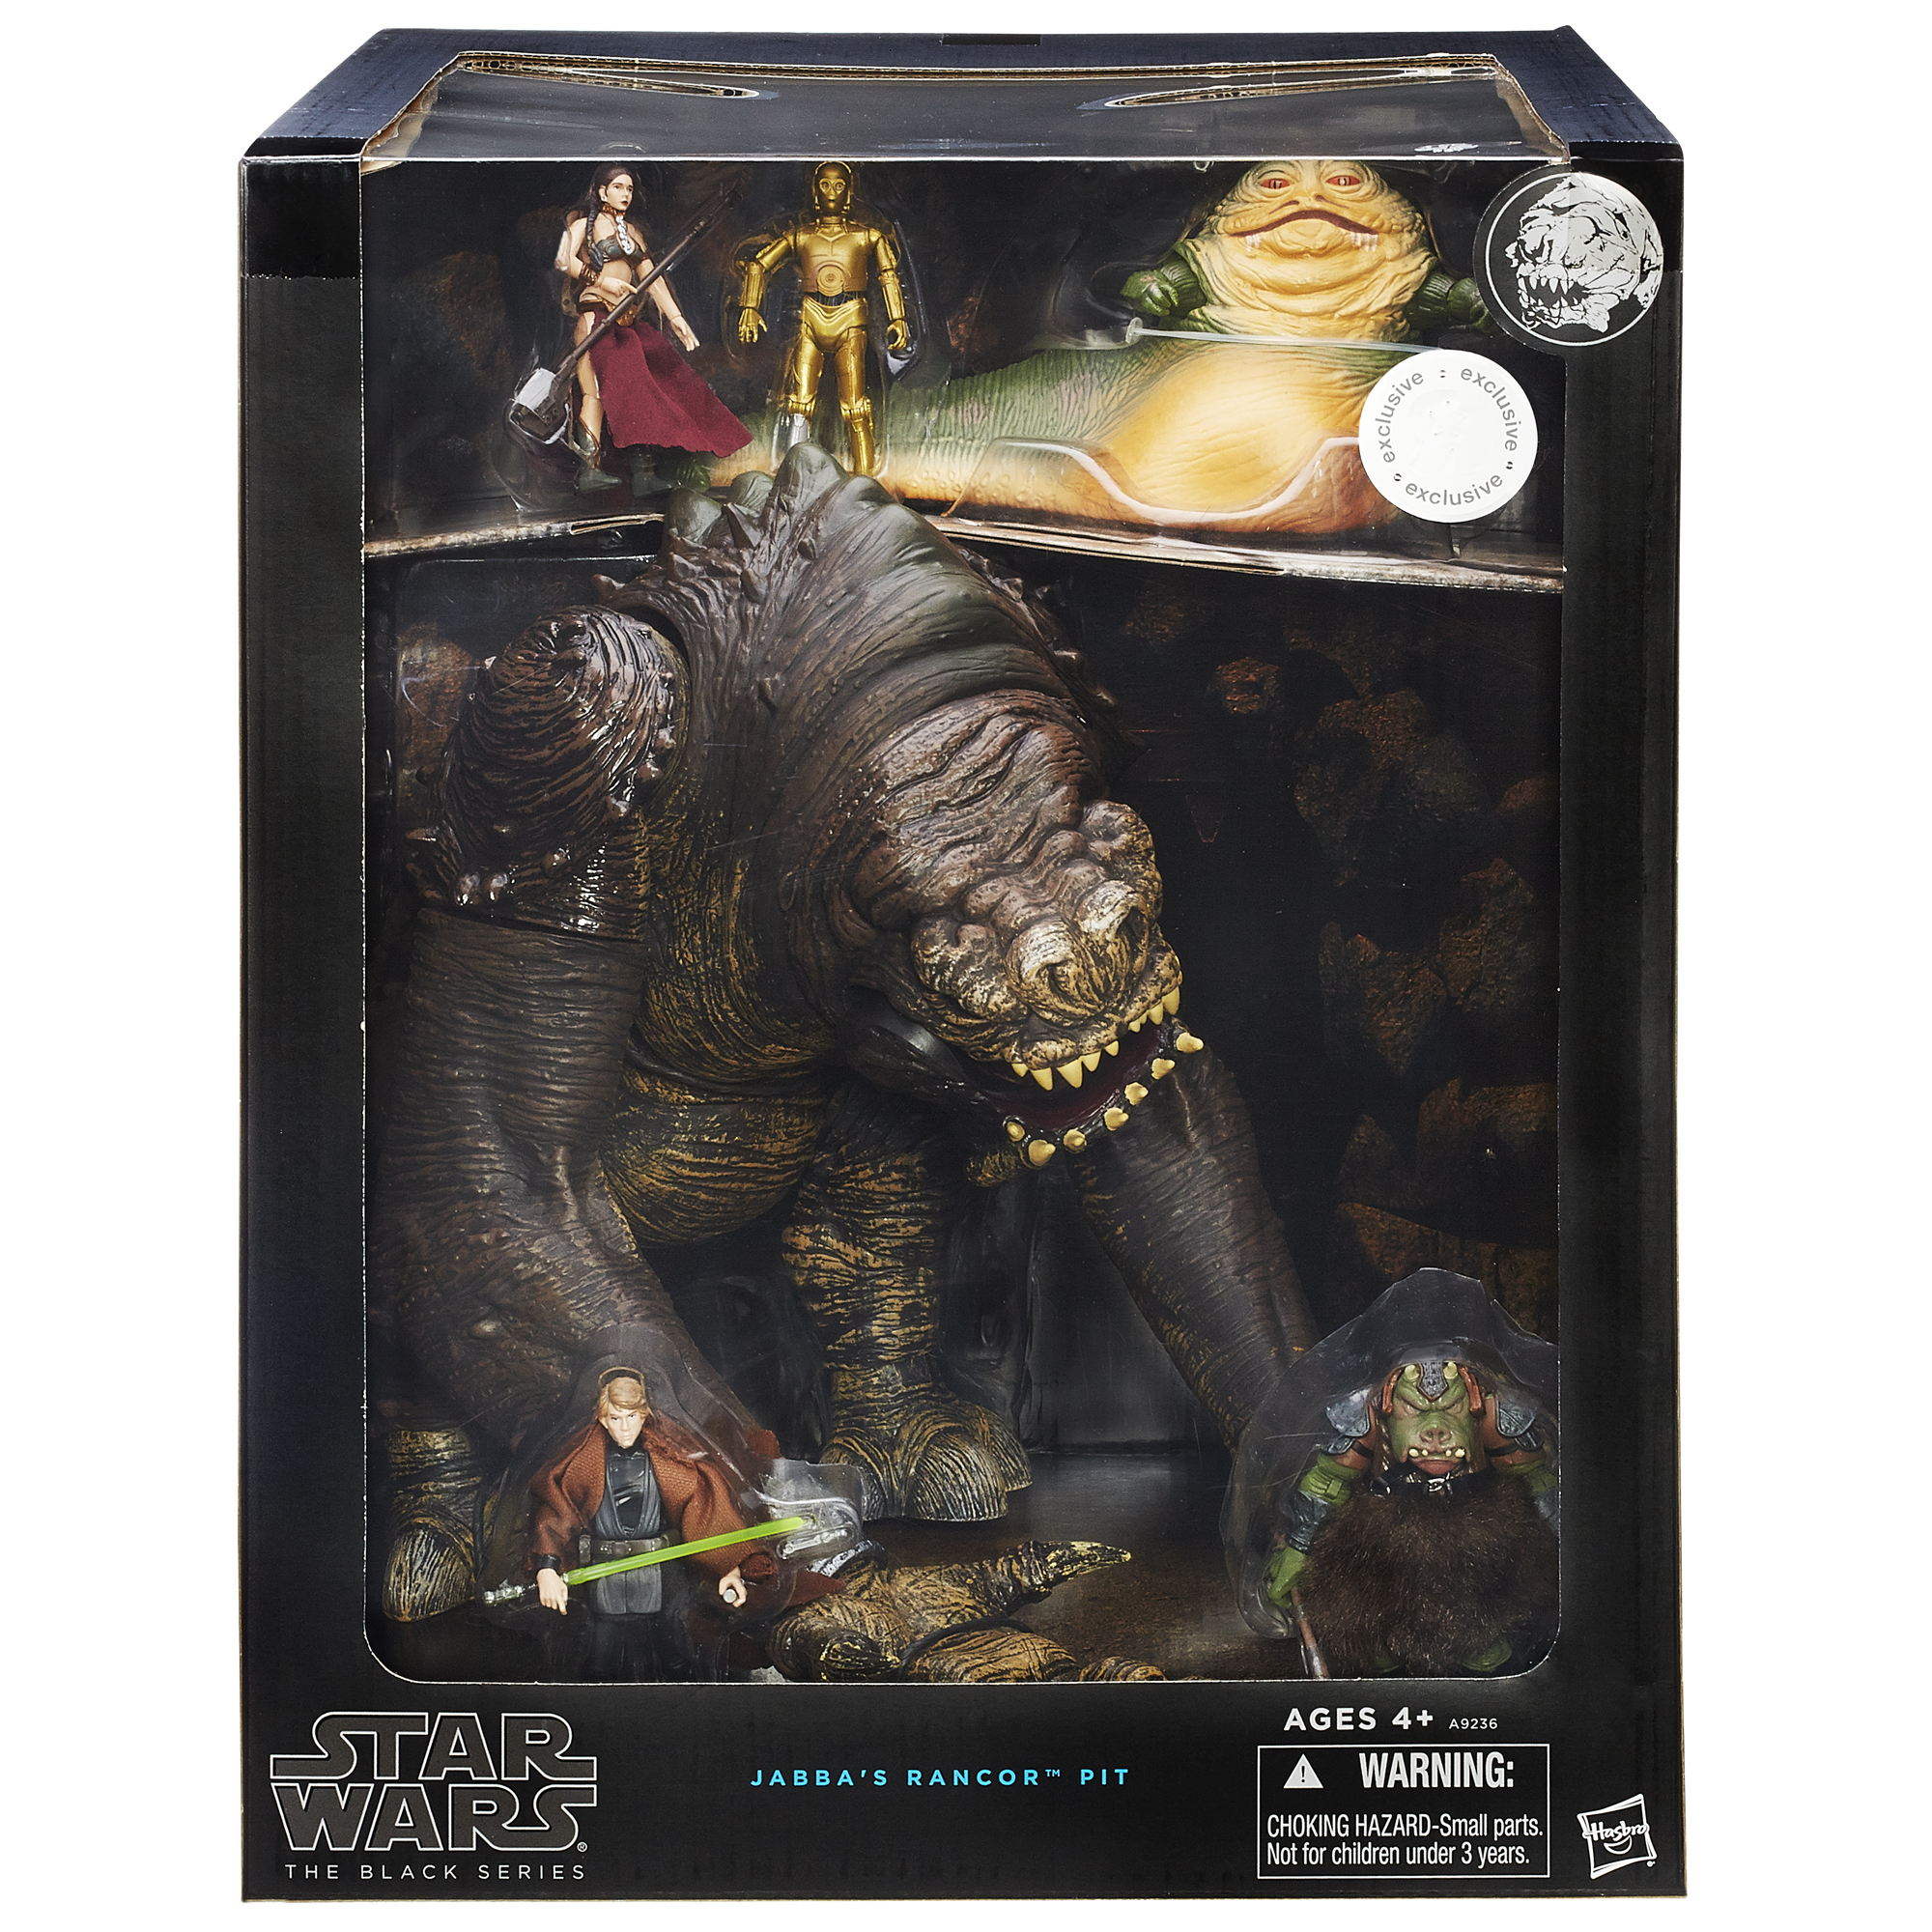 star-wars-the-black-series-jabba-s-rancor-pit-in-package--141330